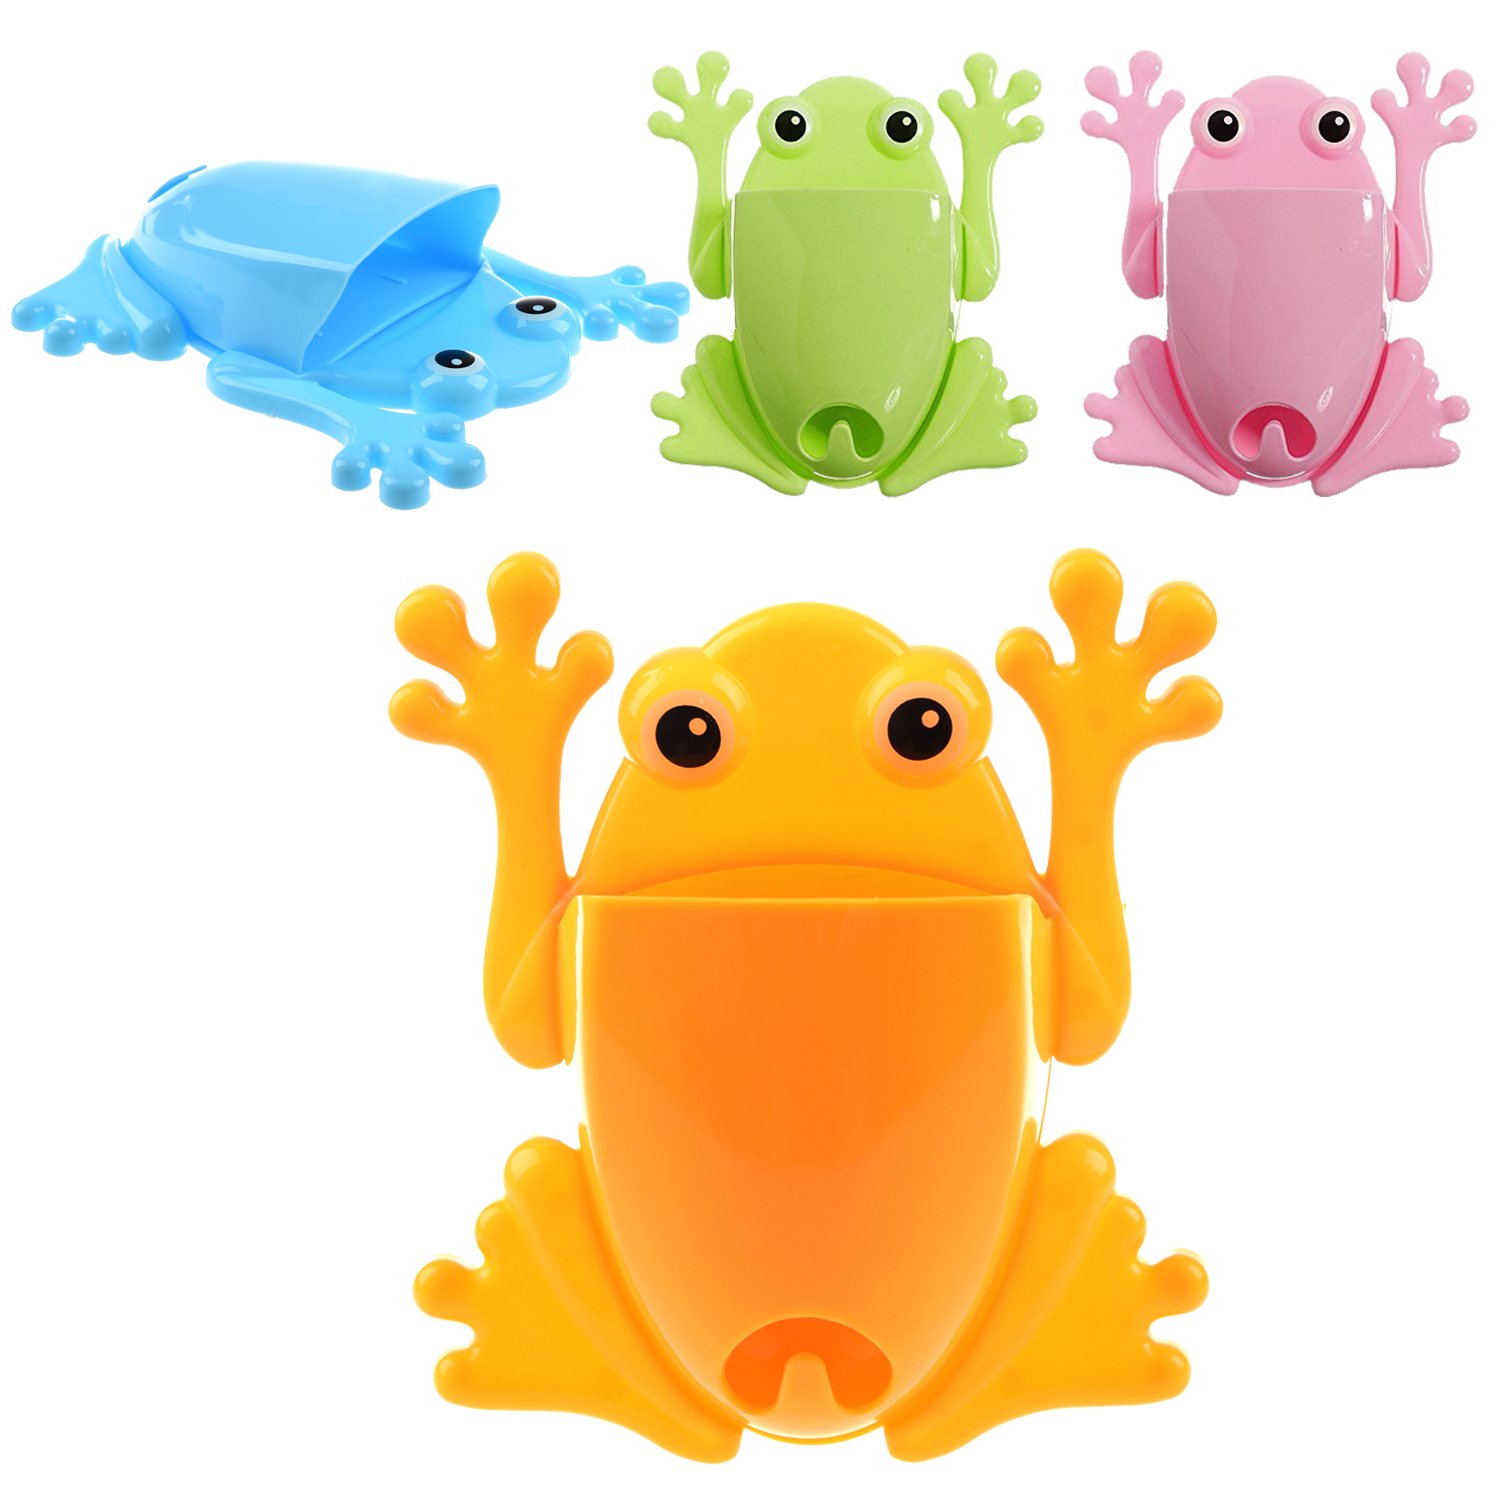 5X-SR-Lovely-Cute-Frog-Toothbrush-Makeup-Tools-Wall-Sticker-Green